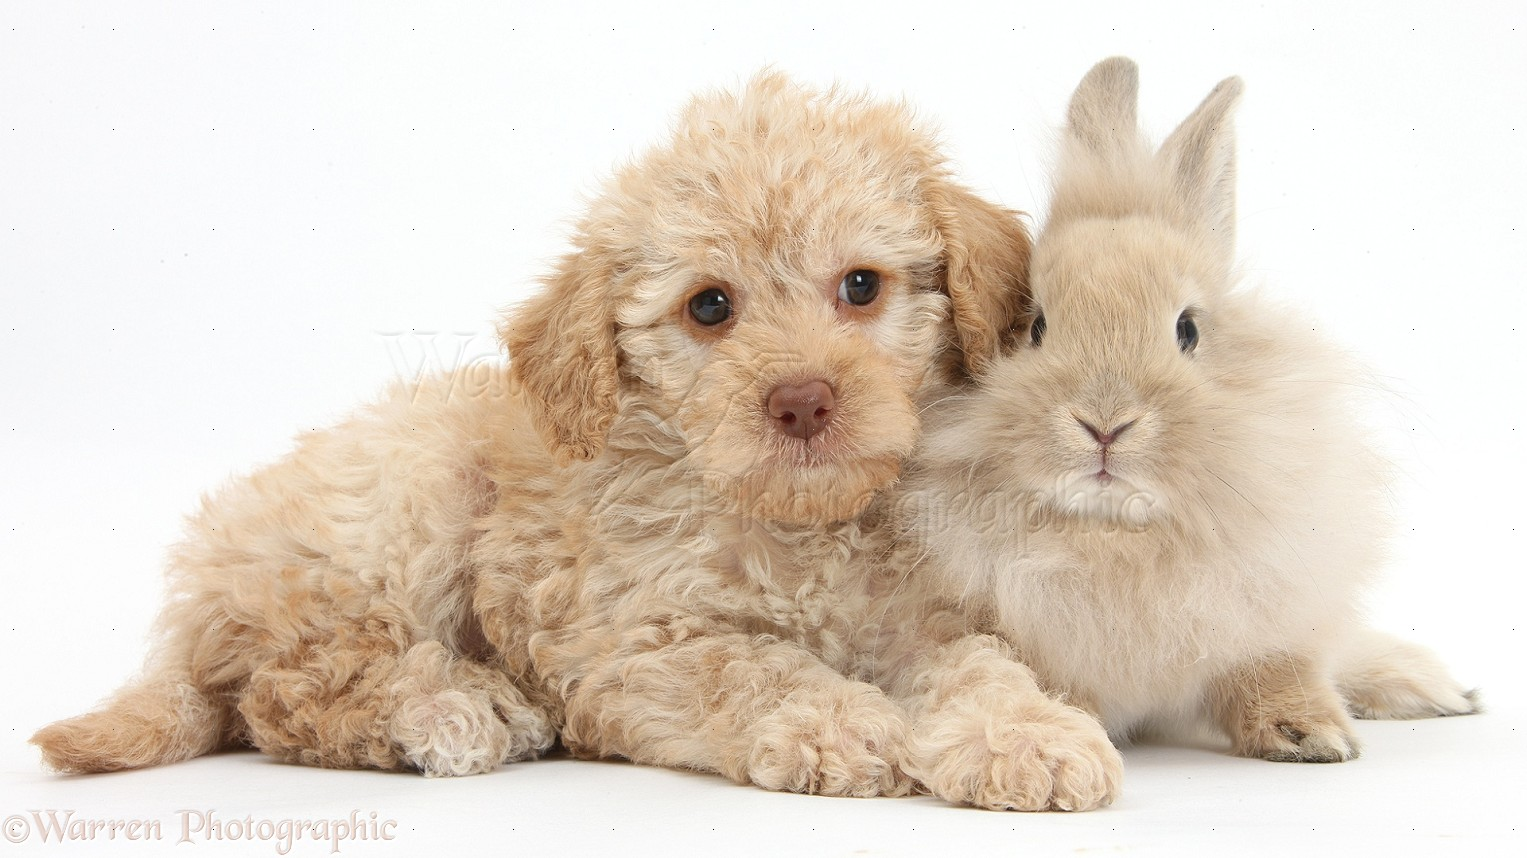 pets toy labradoodle puppy and fluffy bunny photo wp36850 rabbits rodents rabbits deutsch